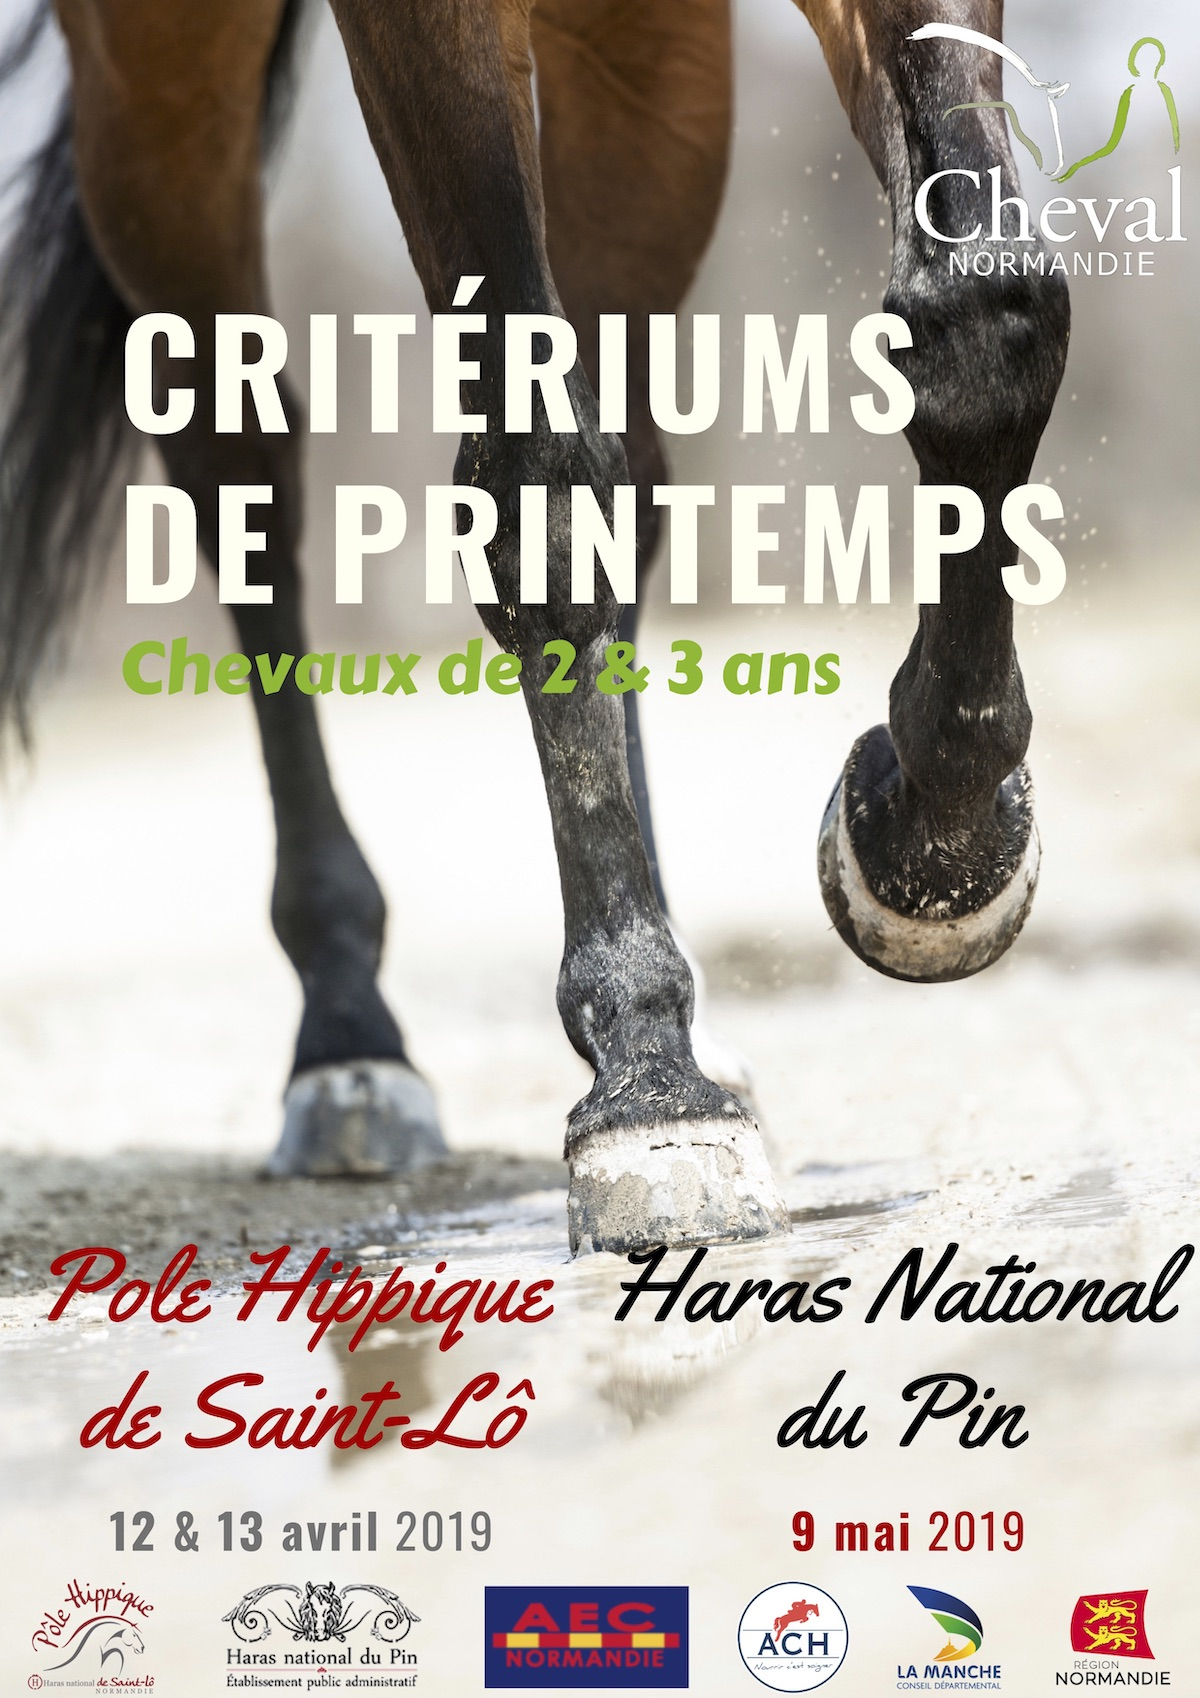 Affiche cirtérium de printemps cheval normanndie avril 2019